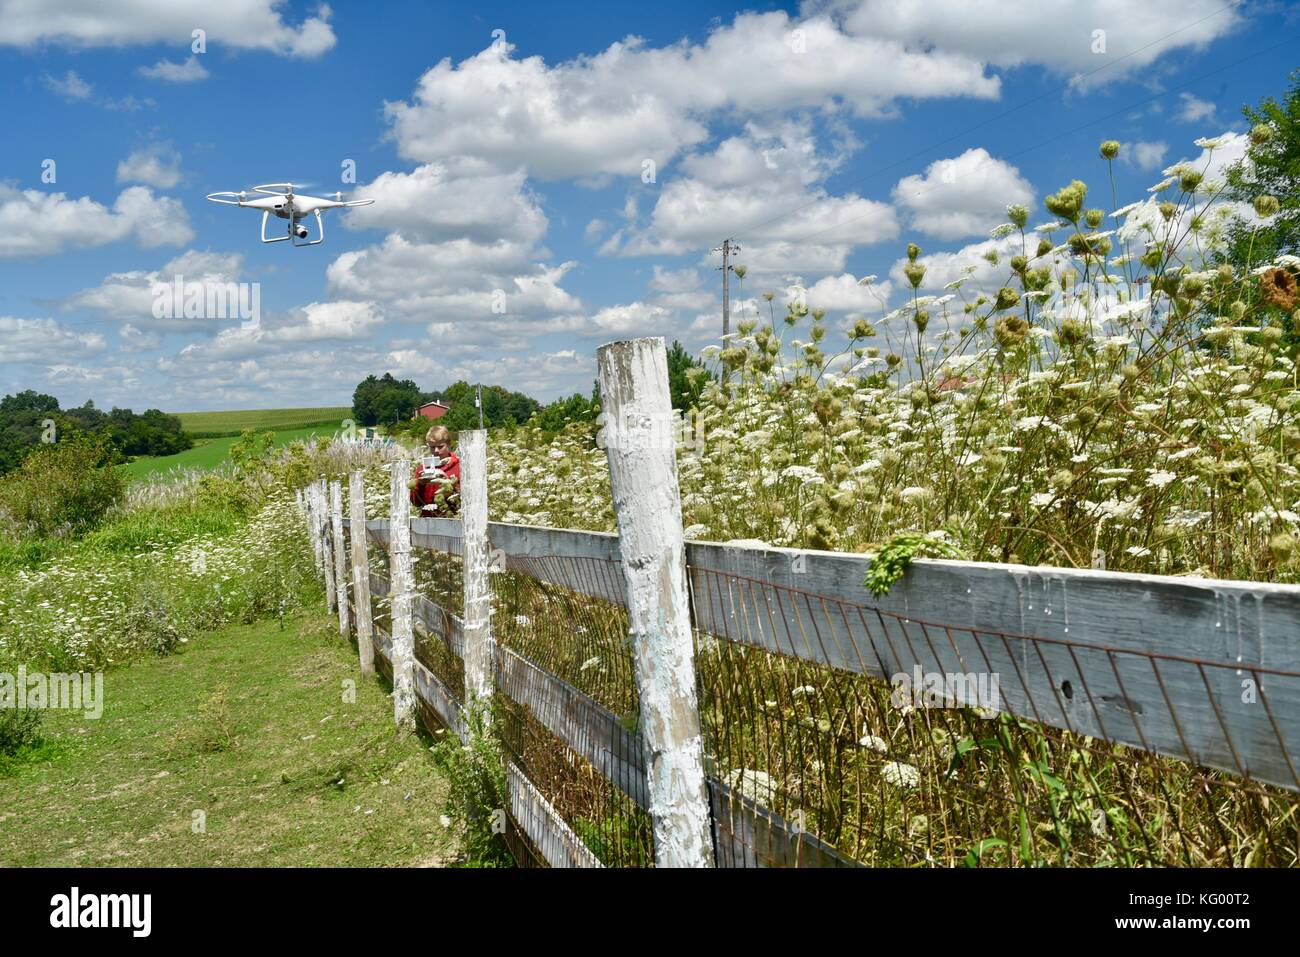 Teen boy flying DJI Phantom 4 Pro+ Drone to check fencing on rural farm in USA. - Stock Image